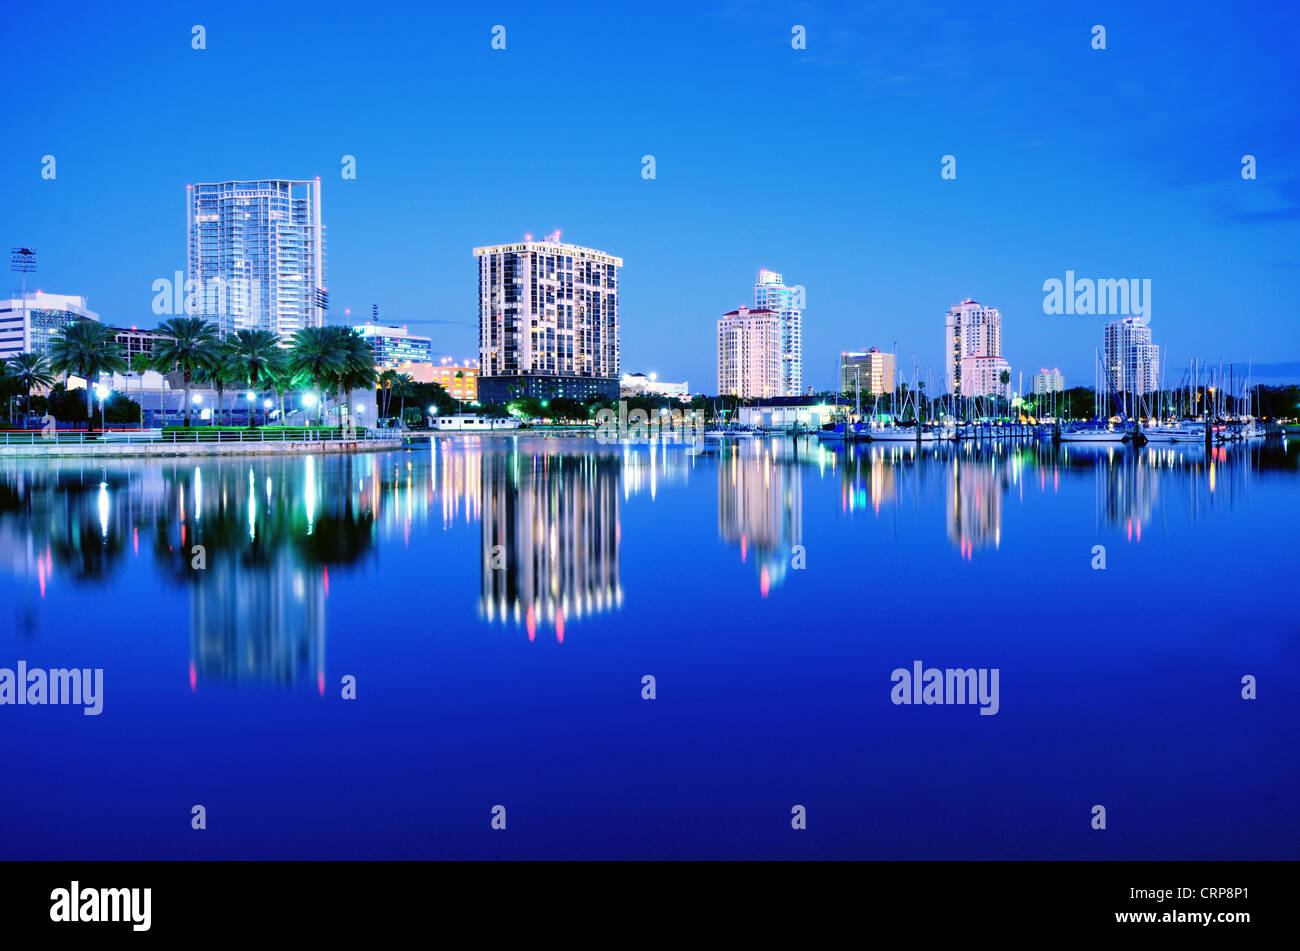 Skyline of St. Petersburg, Florida - Stock Image